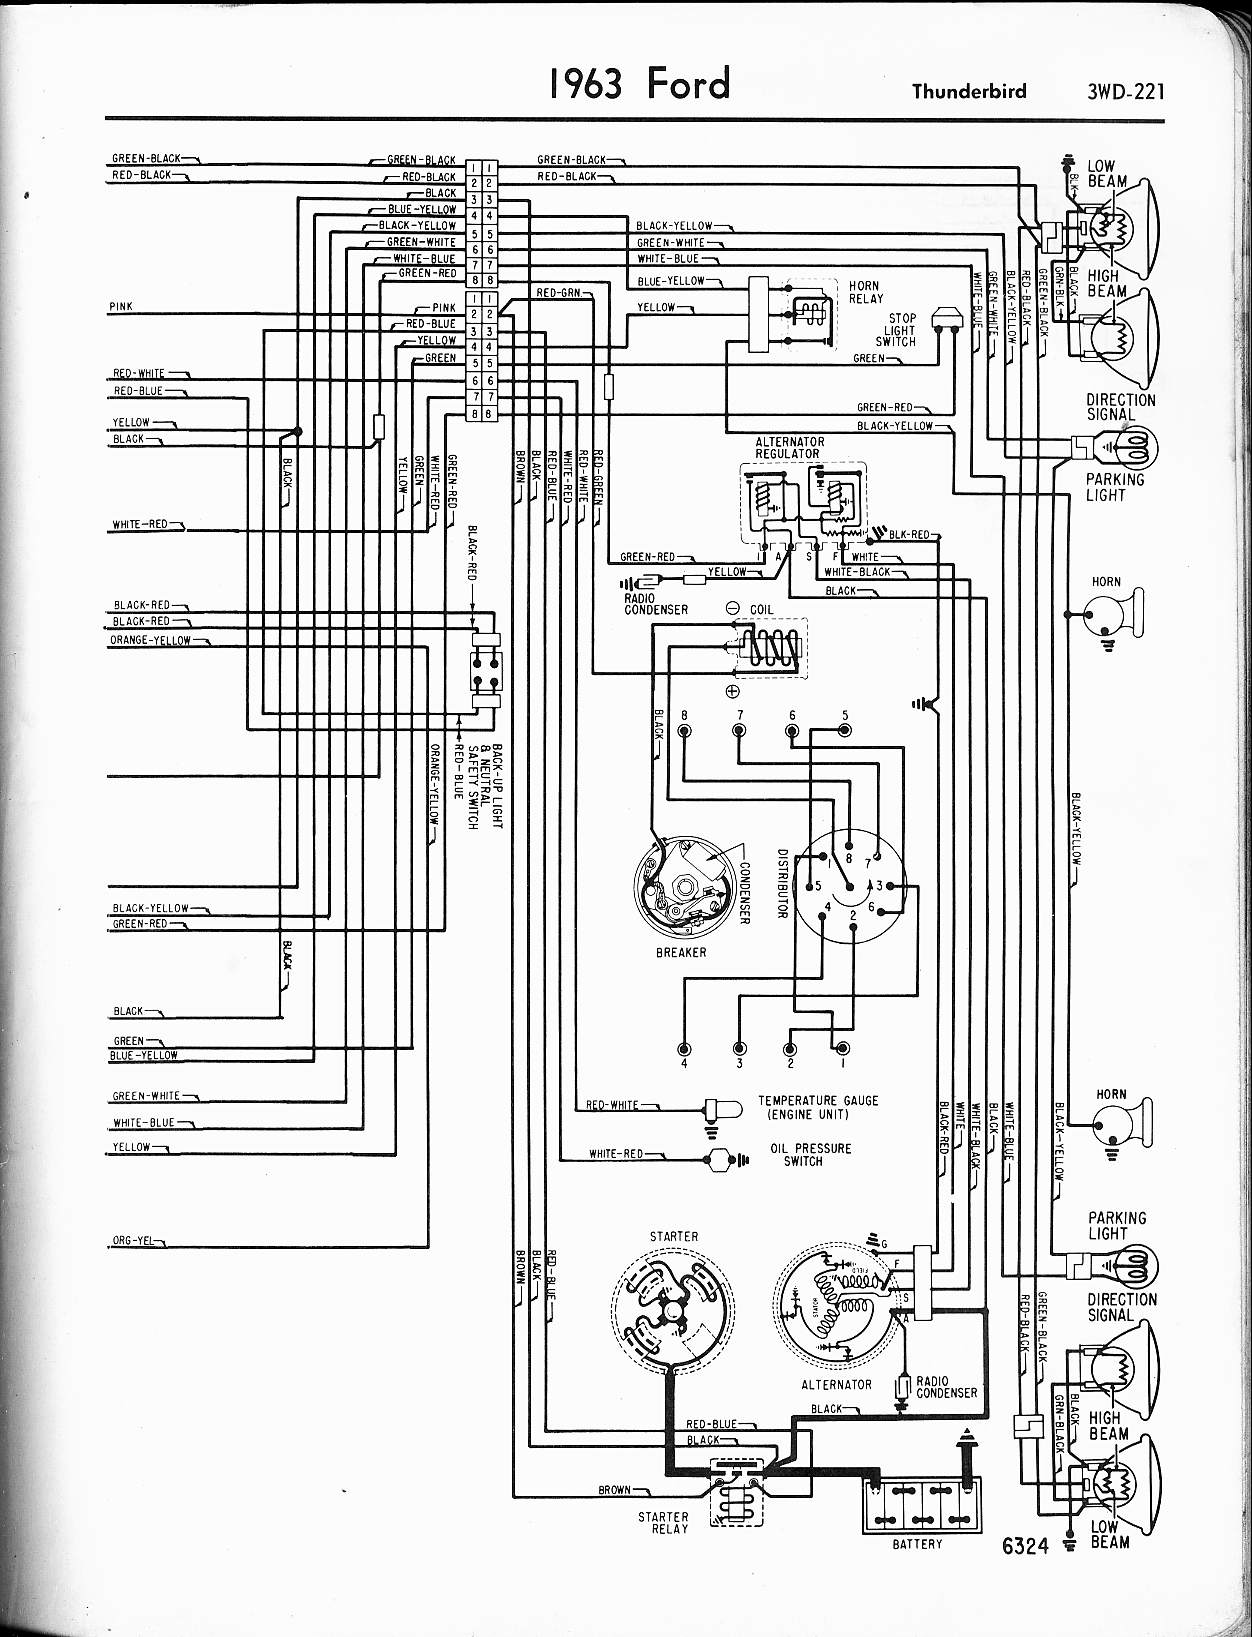 1961 Cadillac Ac Wiring Diagram Fuse Box 1970 1963 Gmc Explained Diagrams Rh Sbsun Co 1968 Mustang 1966